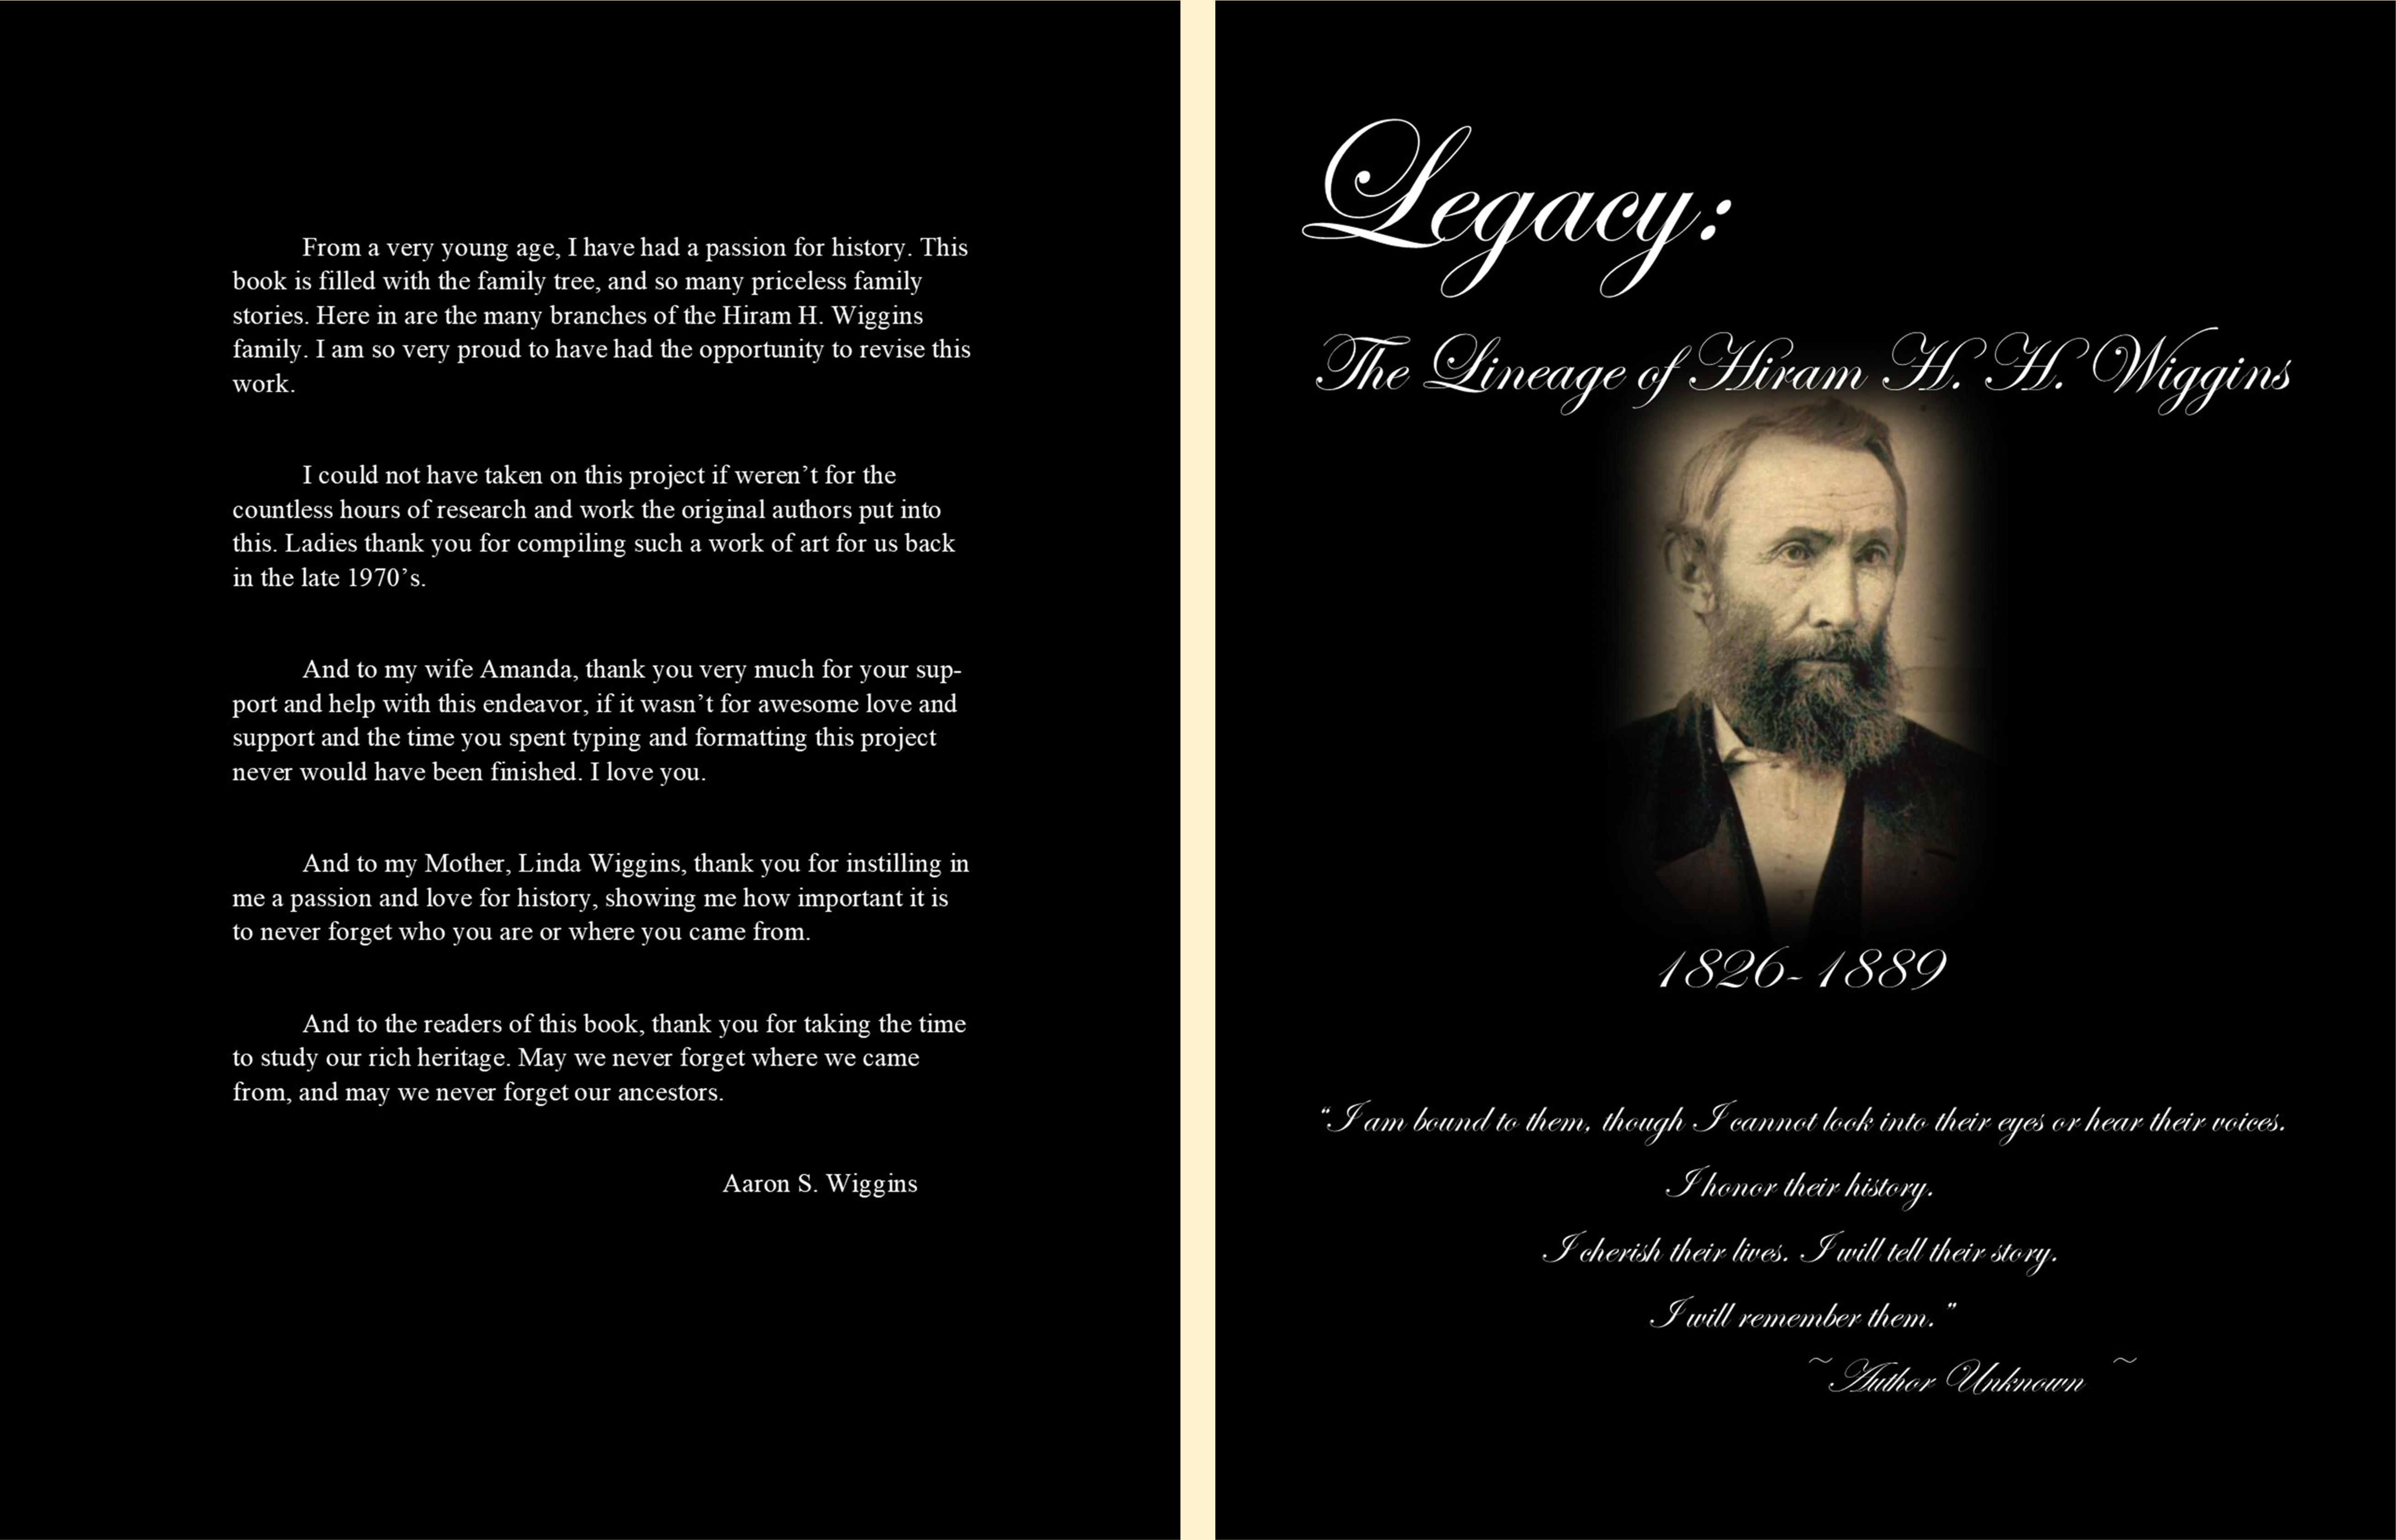 Legacy: The Lineage of Hiram H. H. Wiggins cover image